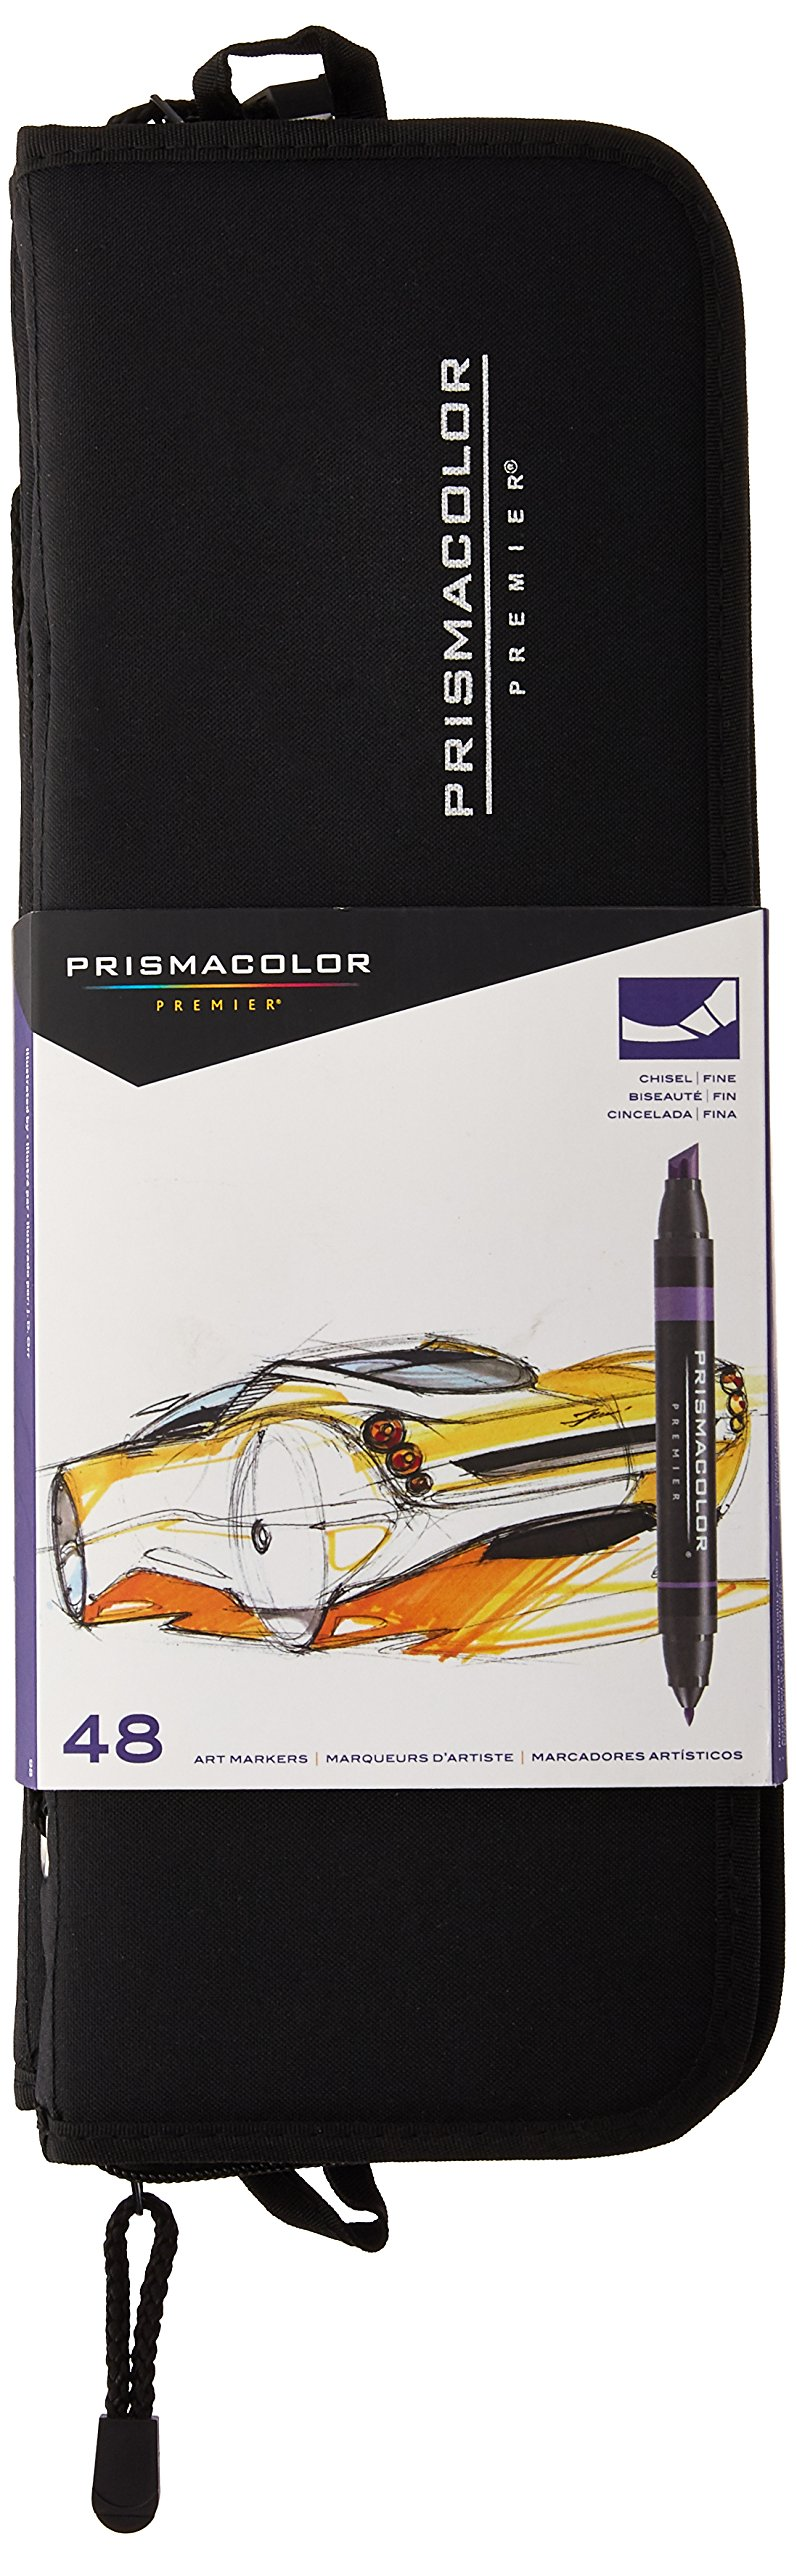 Prismacolor Premier Double-Ended Art Markers, Fine and Chisel Tip, 48 Pack, with Carrying Case by Prismacolor